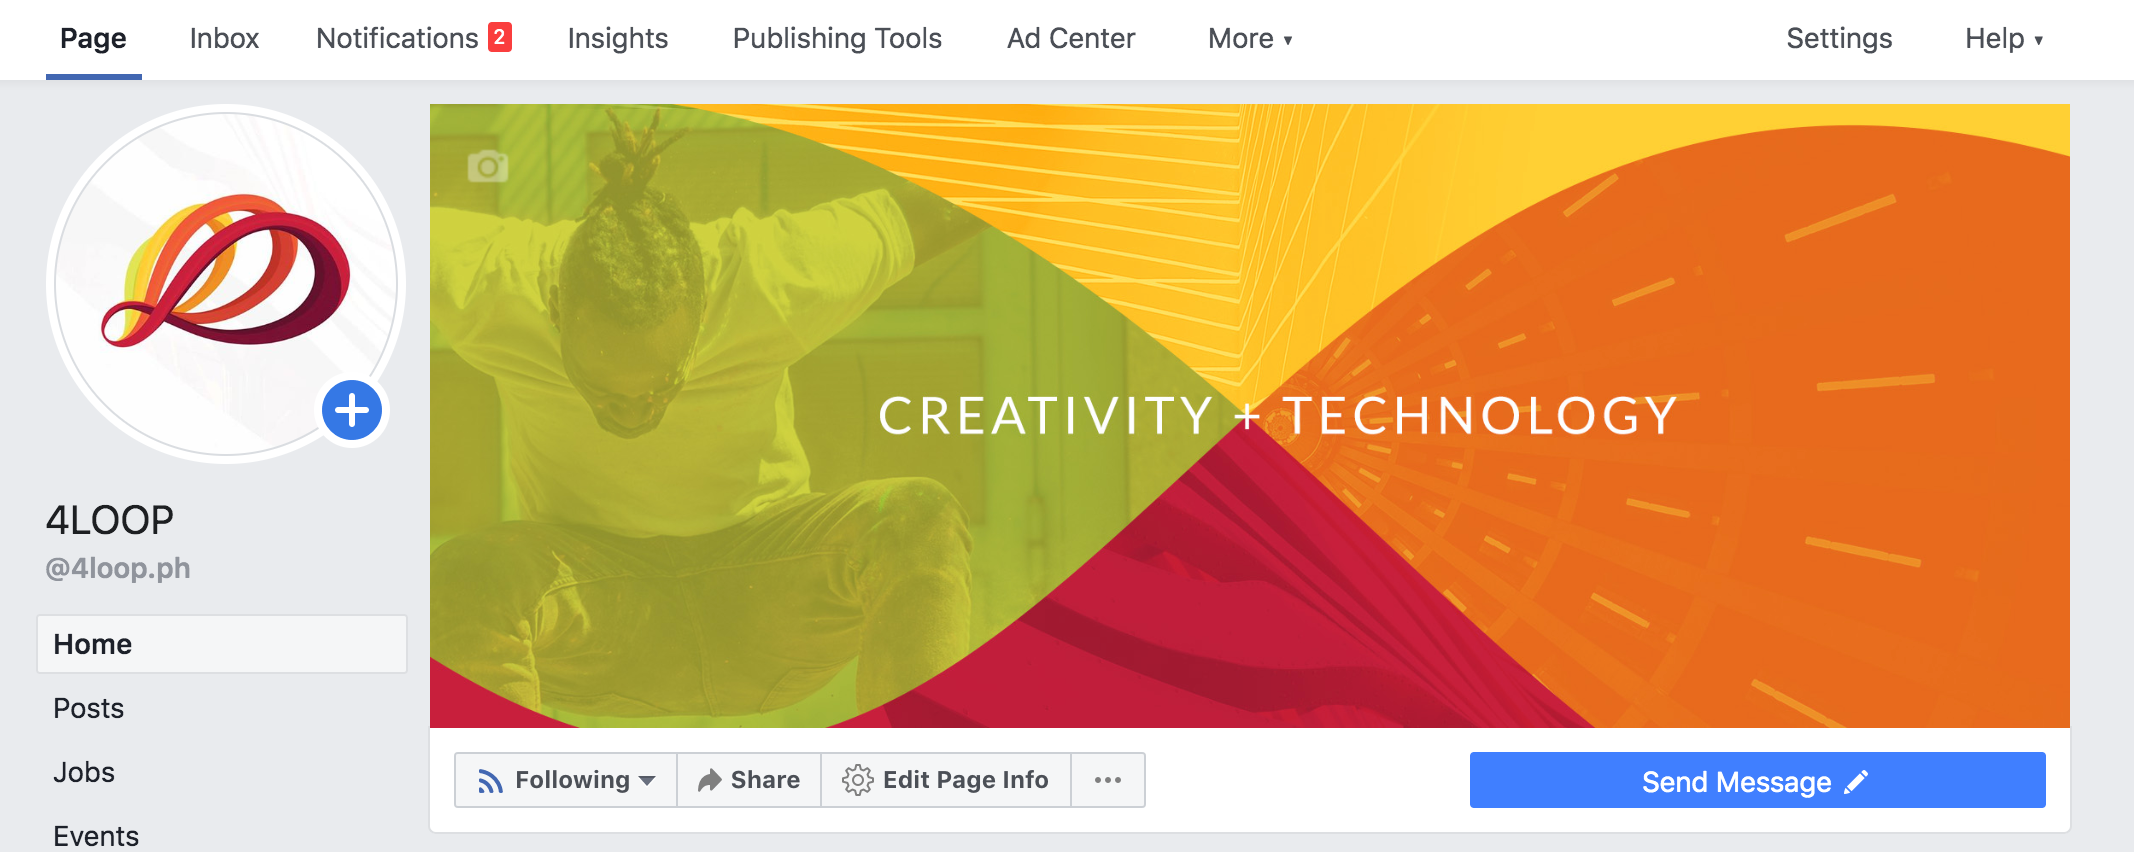 Setting up your Facebook Business Marketing Page for 2019